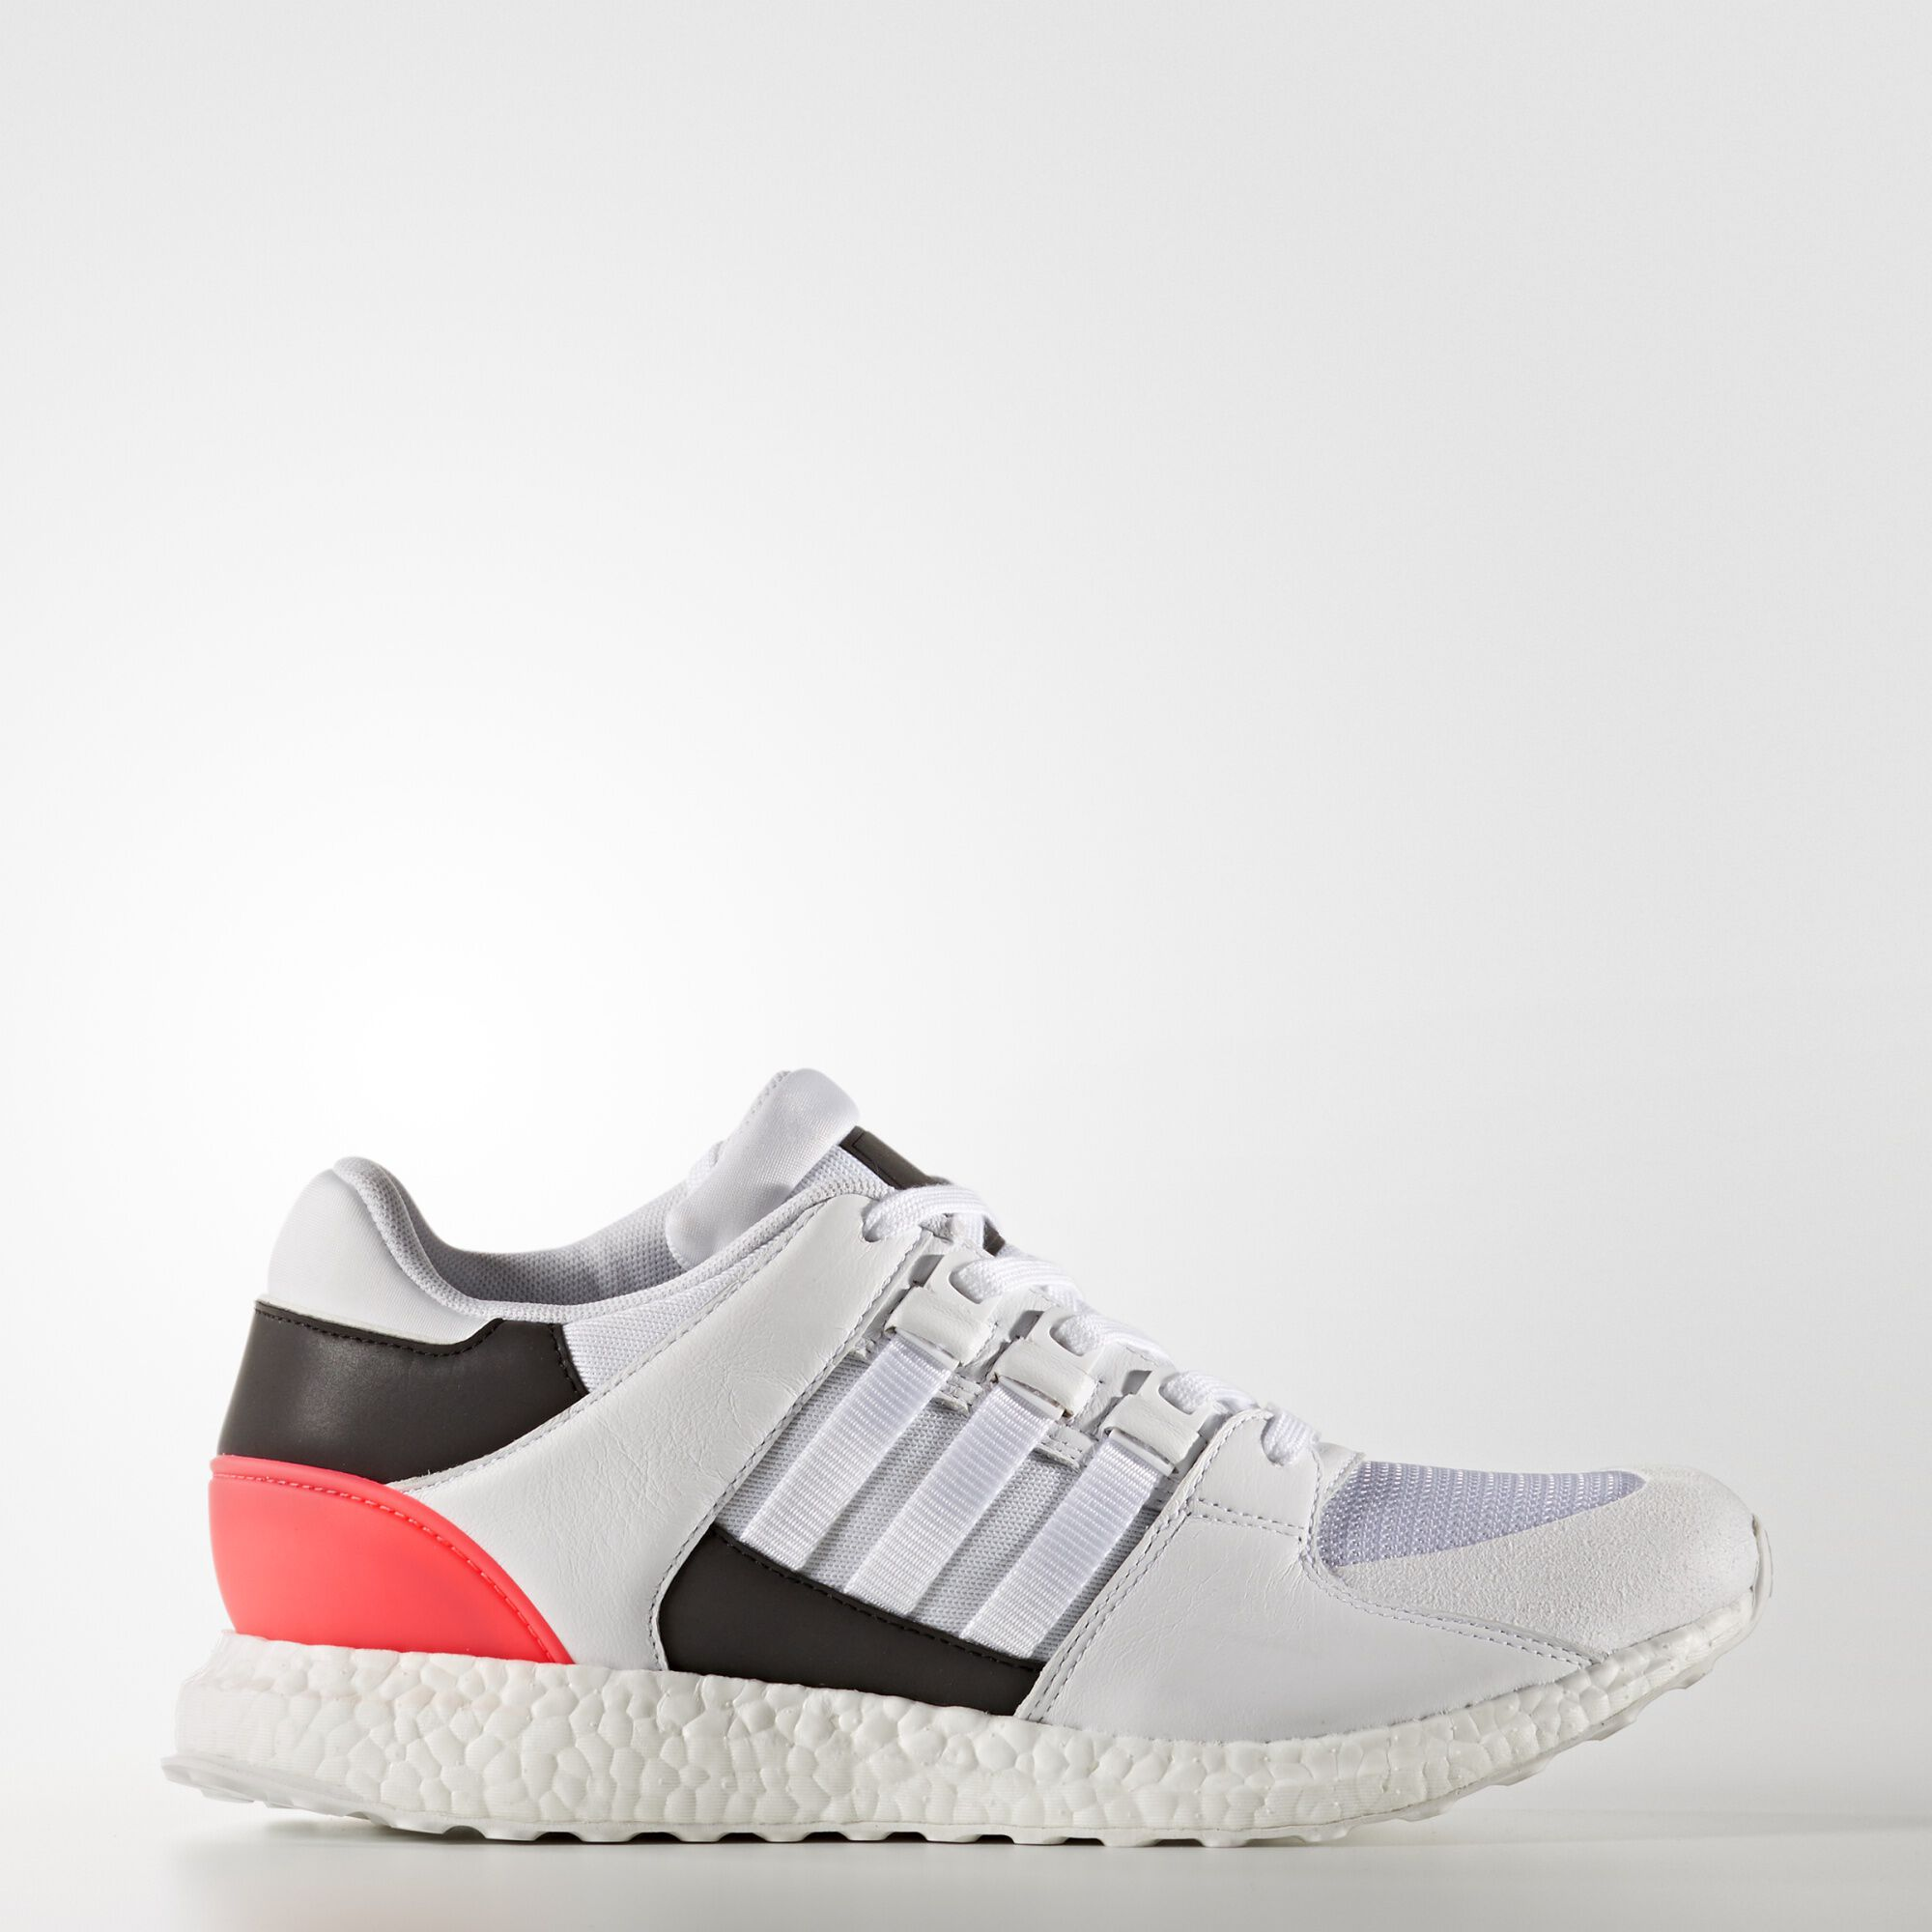 finest selection 68380 a6c8b Original Adidas eqt support ultra pk (white) bb1243 Size 13